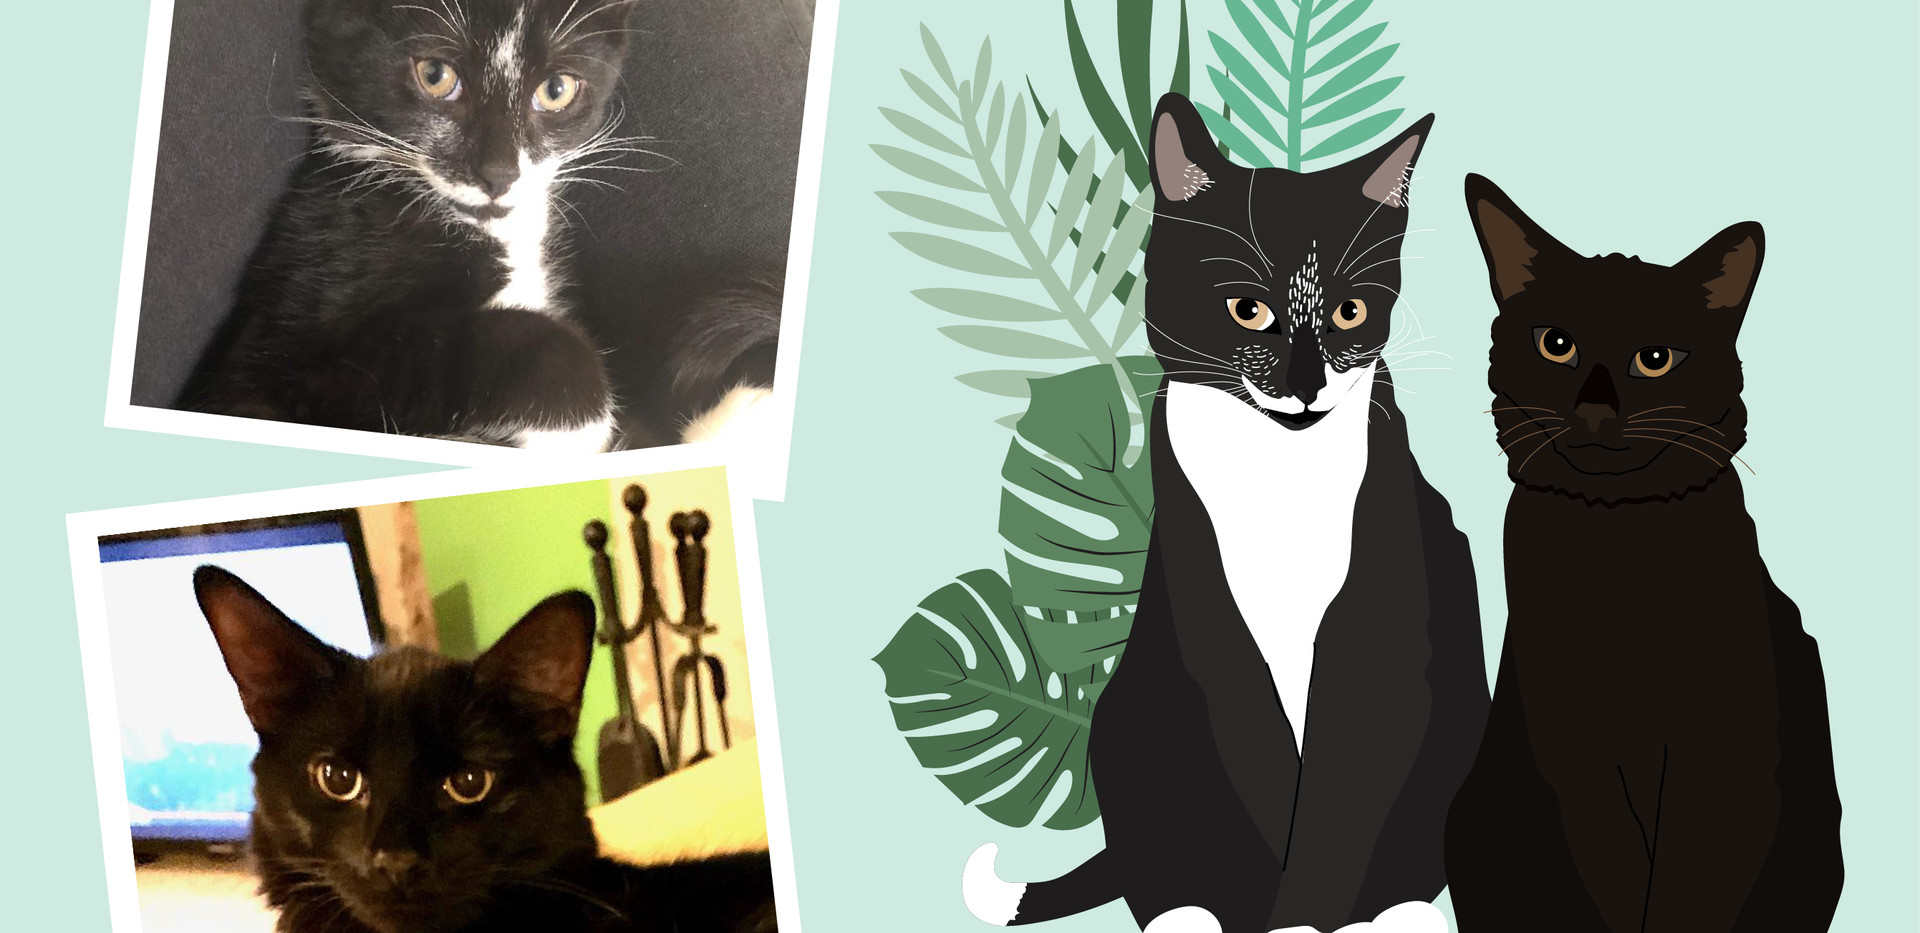 Pet portrait wix layout-04.jpg